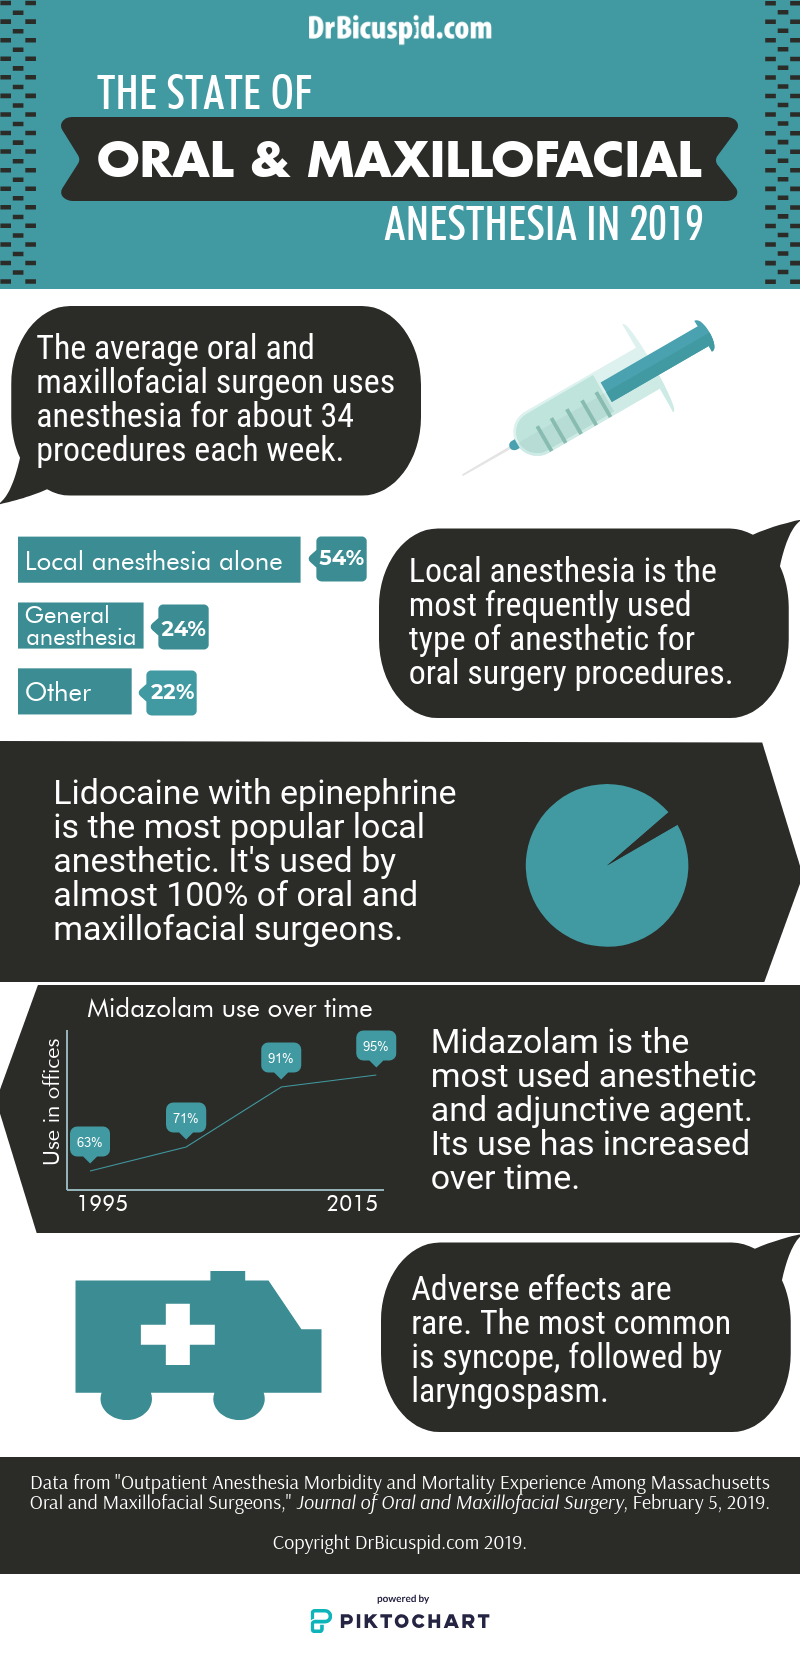 The state of oral and maxillofacial anesthesia in 2019